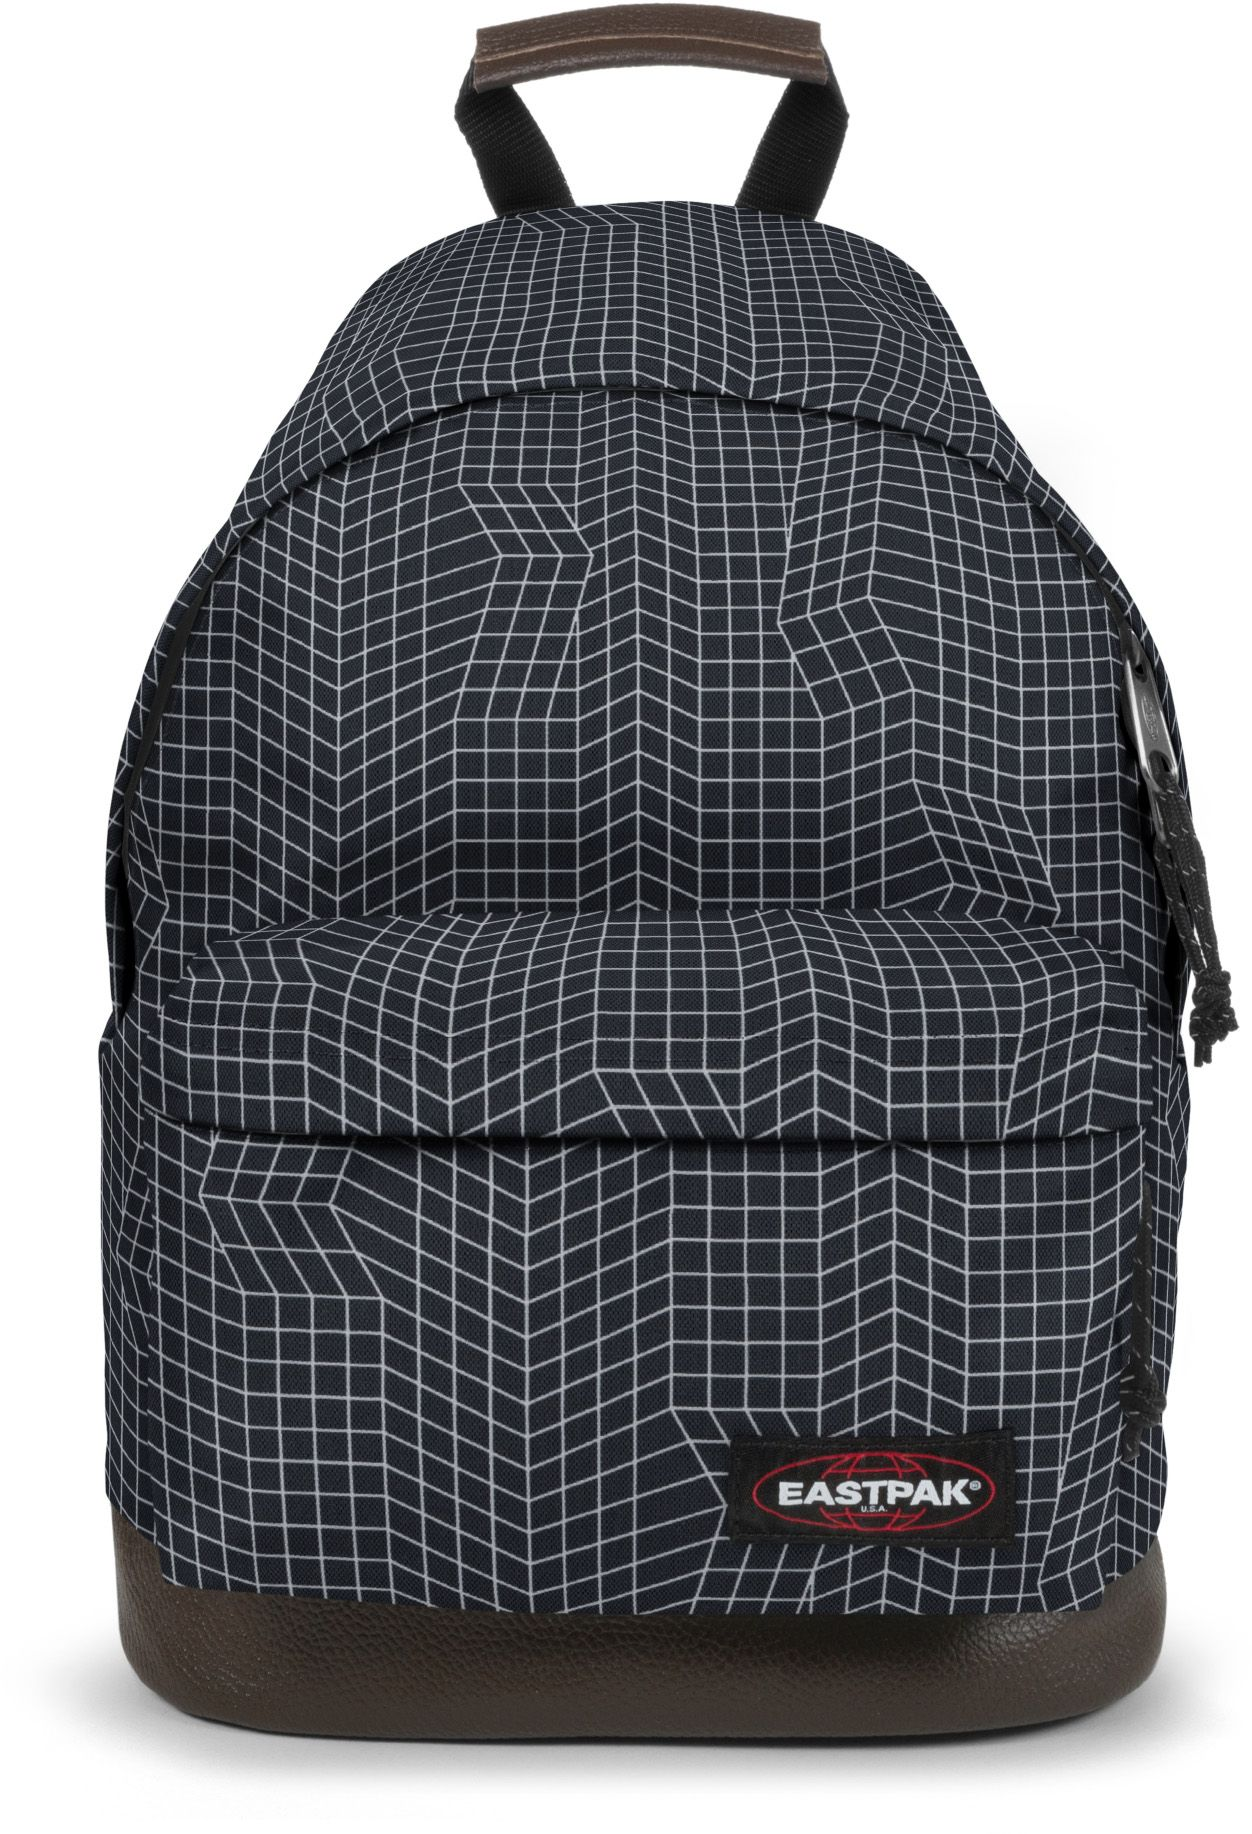 EASTPAK Eastpak Rucksack mit Laptopfach, »WYOMING black dance«